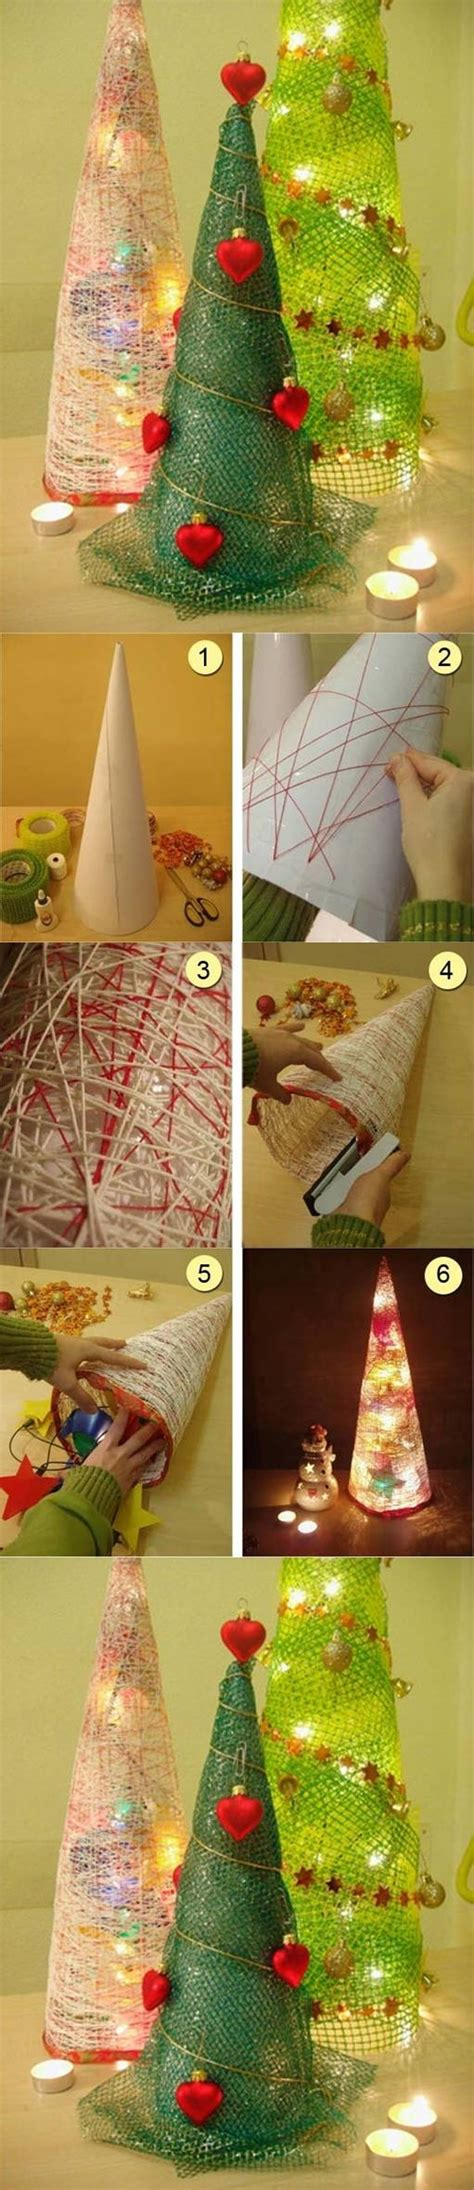 diy string christmas trees pictures photos and images